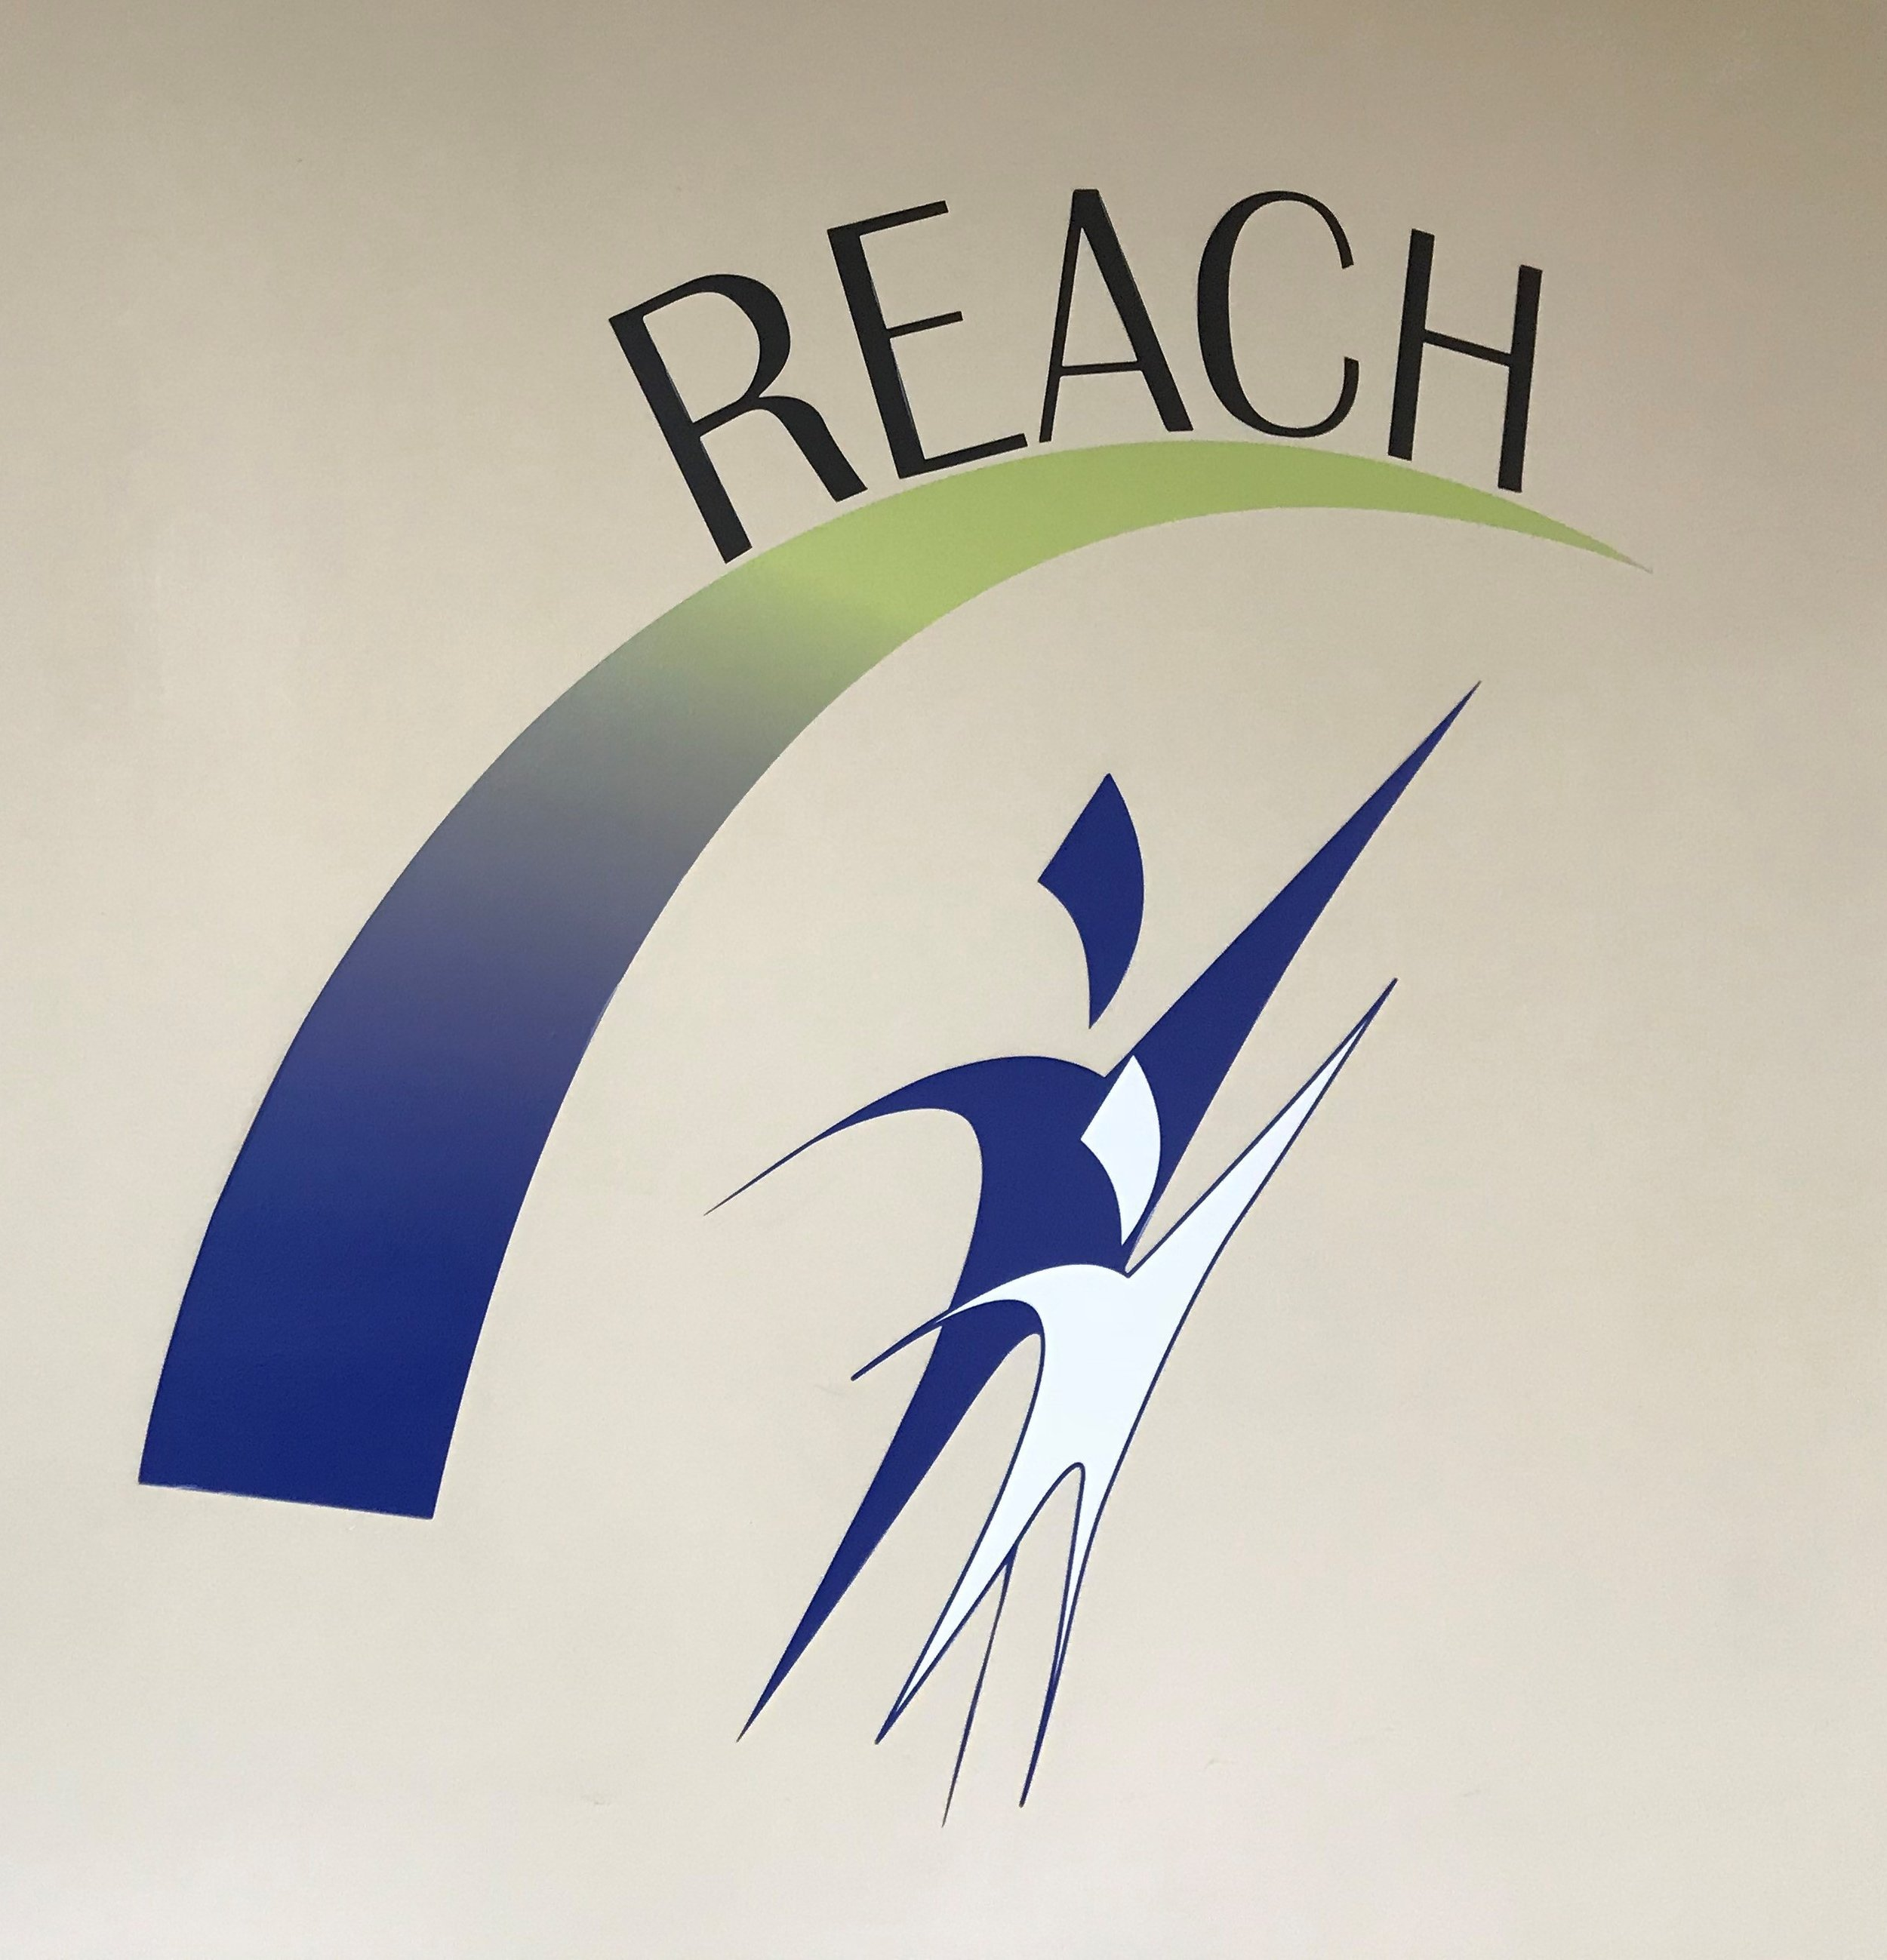 The REACH food pantry serves more than 200 DuPage County families that are dealing with food insecurity every month.